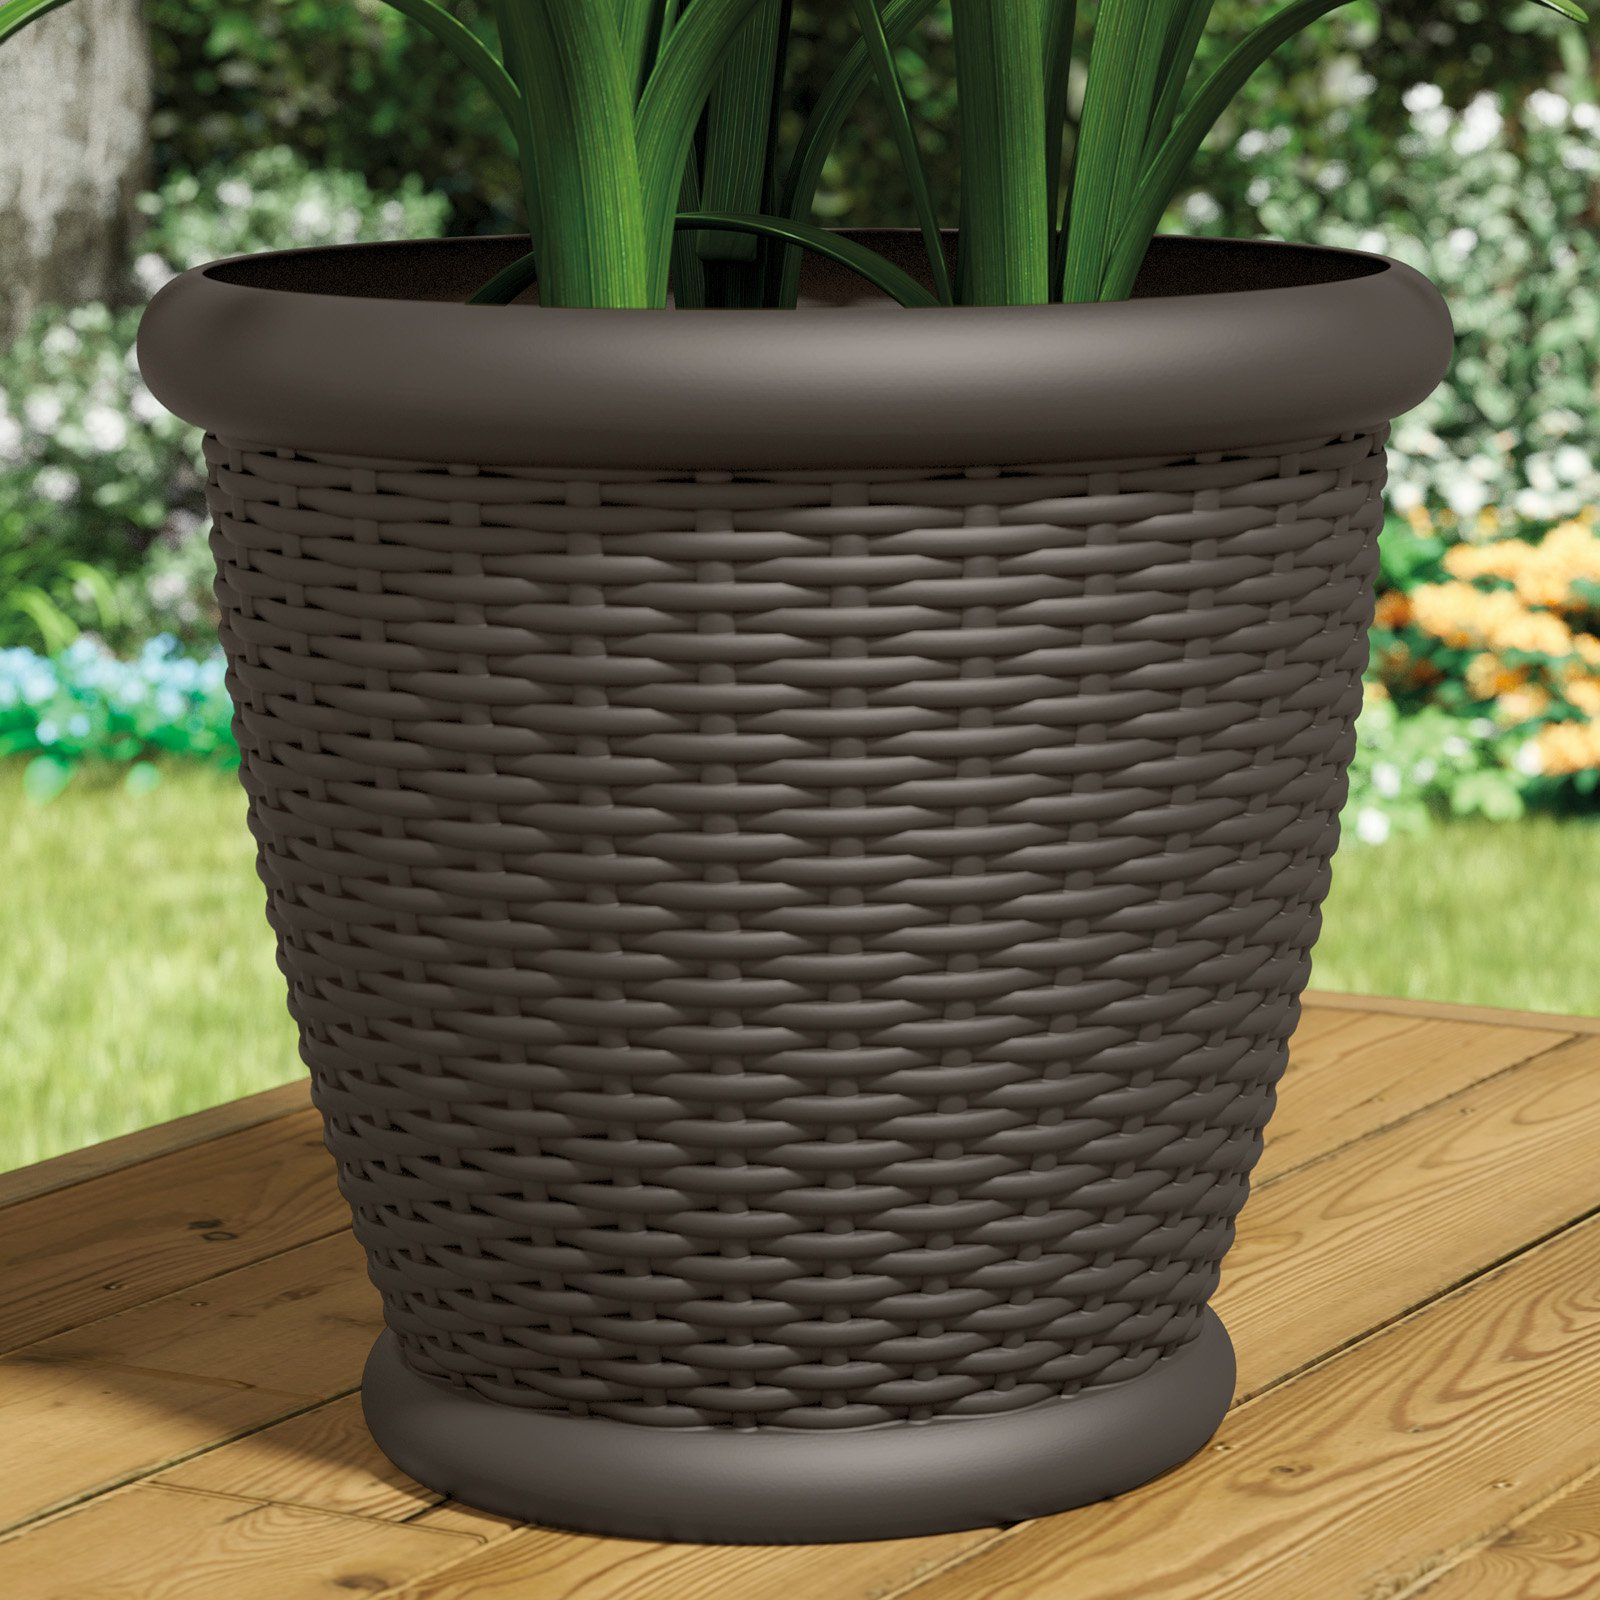 Suncast Willow Resin Wicker Planter Set Of 2 Products